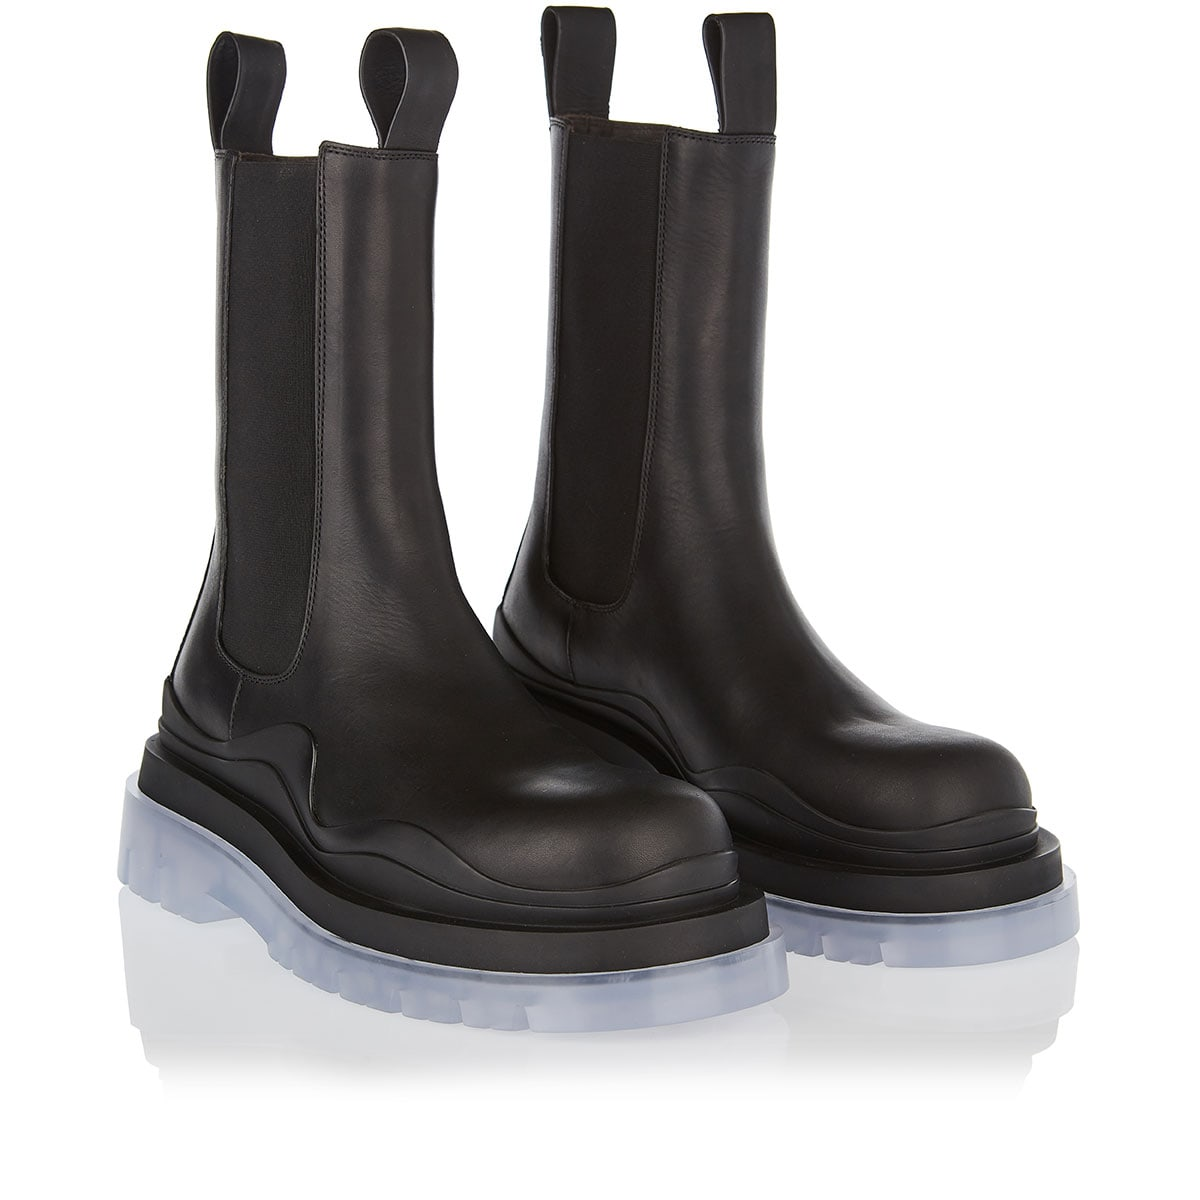 BV Tire chunky leather boots